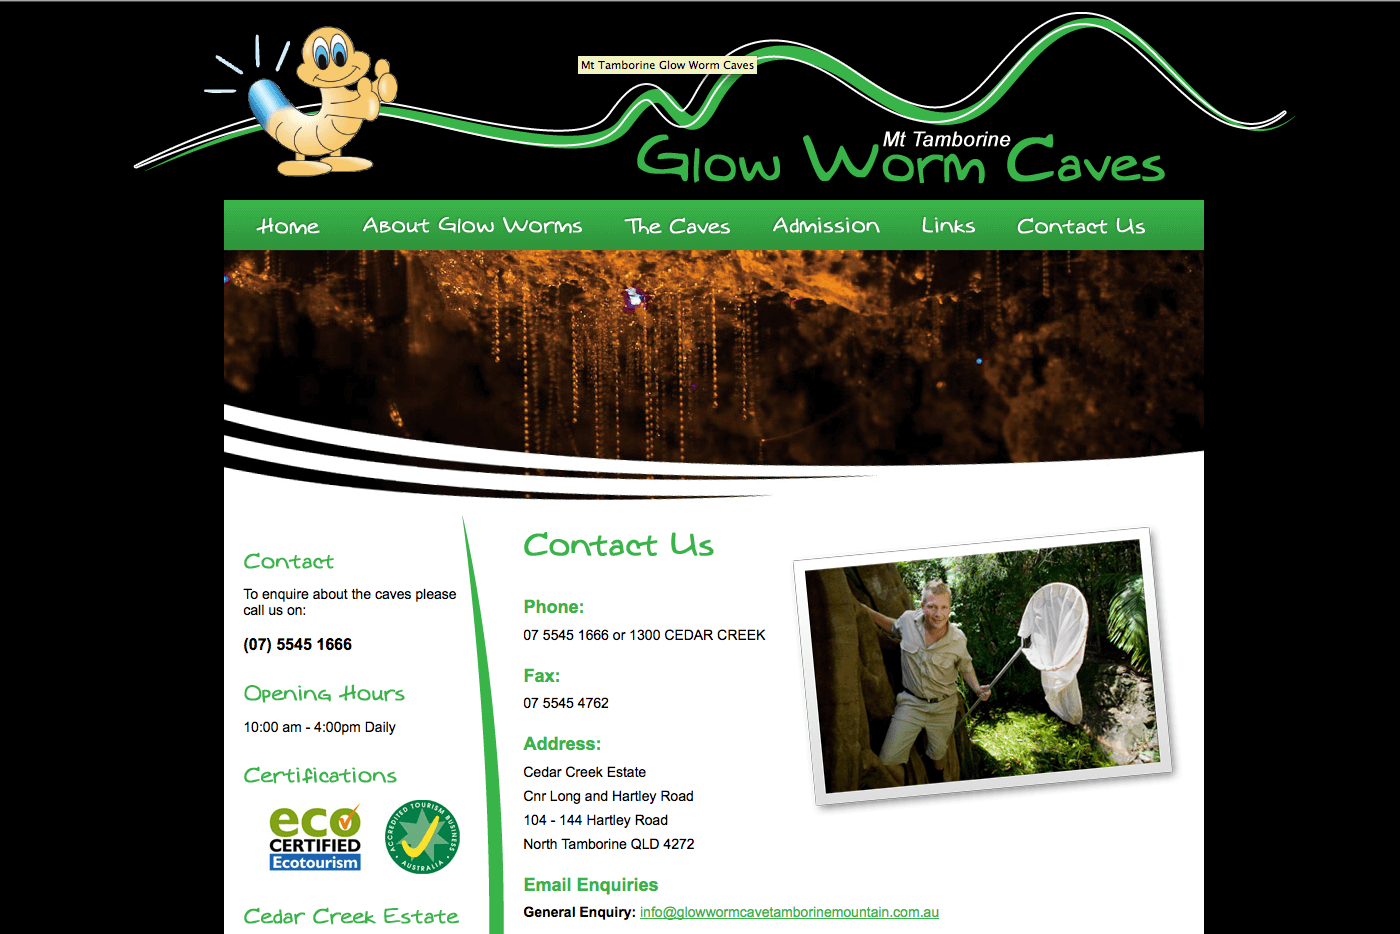 Able Video Mt Tamborine Glow Worm Caves Website 03